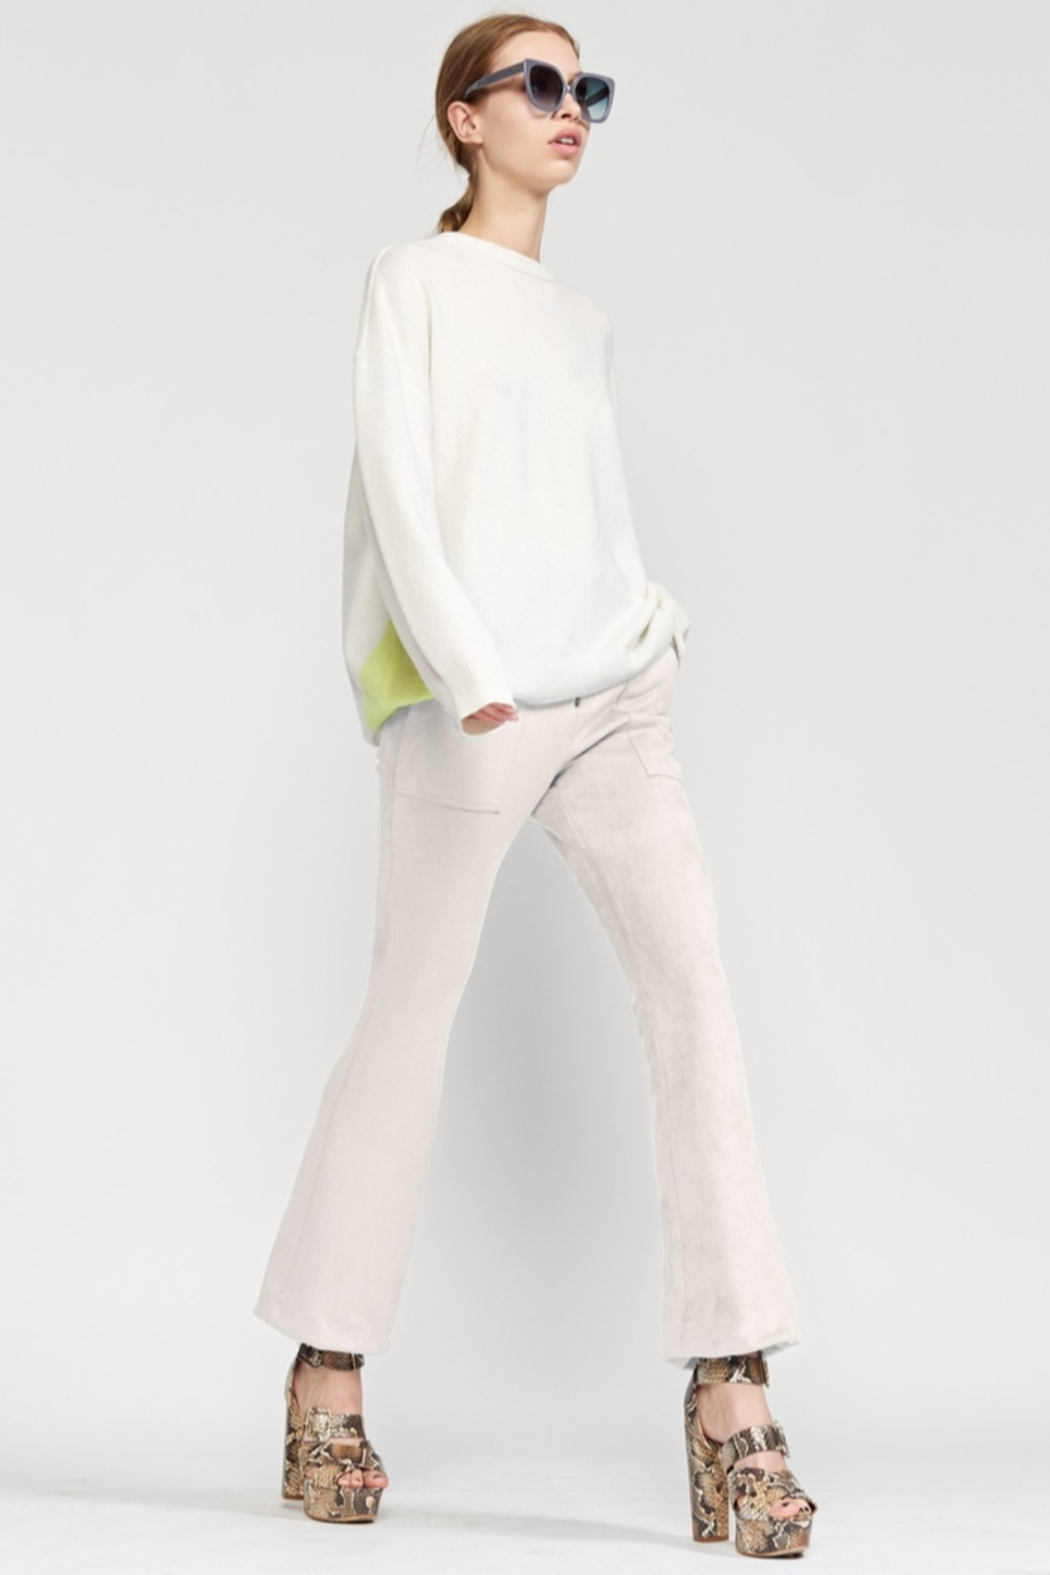 Cynthia Rowley Nadia Stretch Faux-suede Flared Pant - Front Full Image